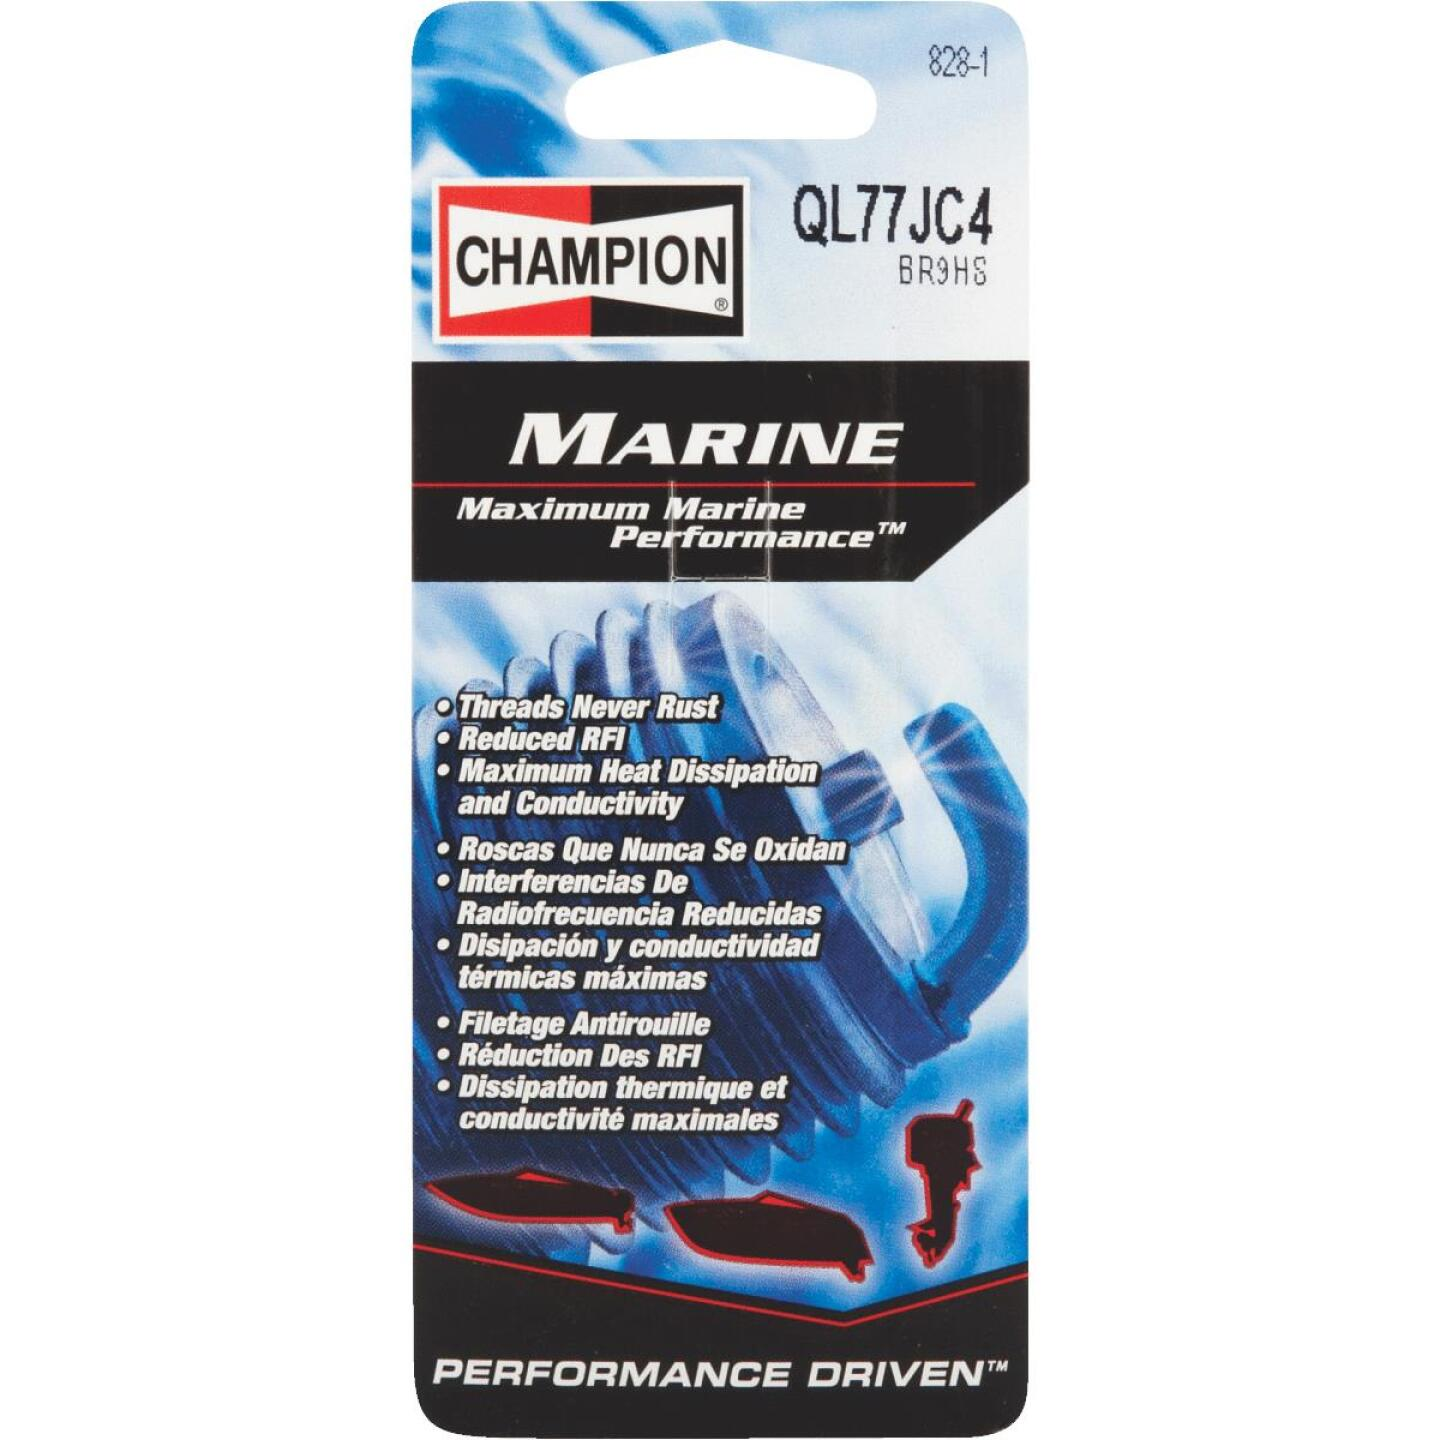 Champion QL77JC4 Copper Plus Marine Spark Plug Image 1